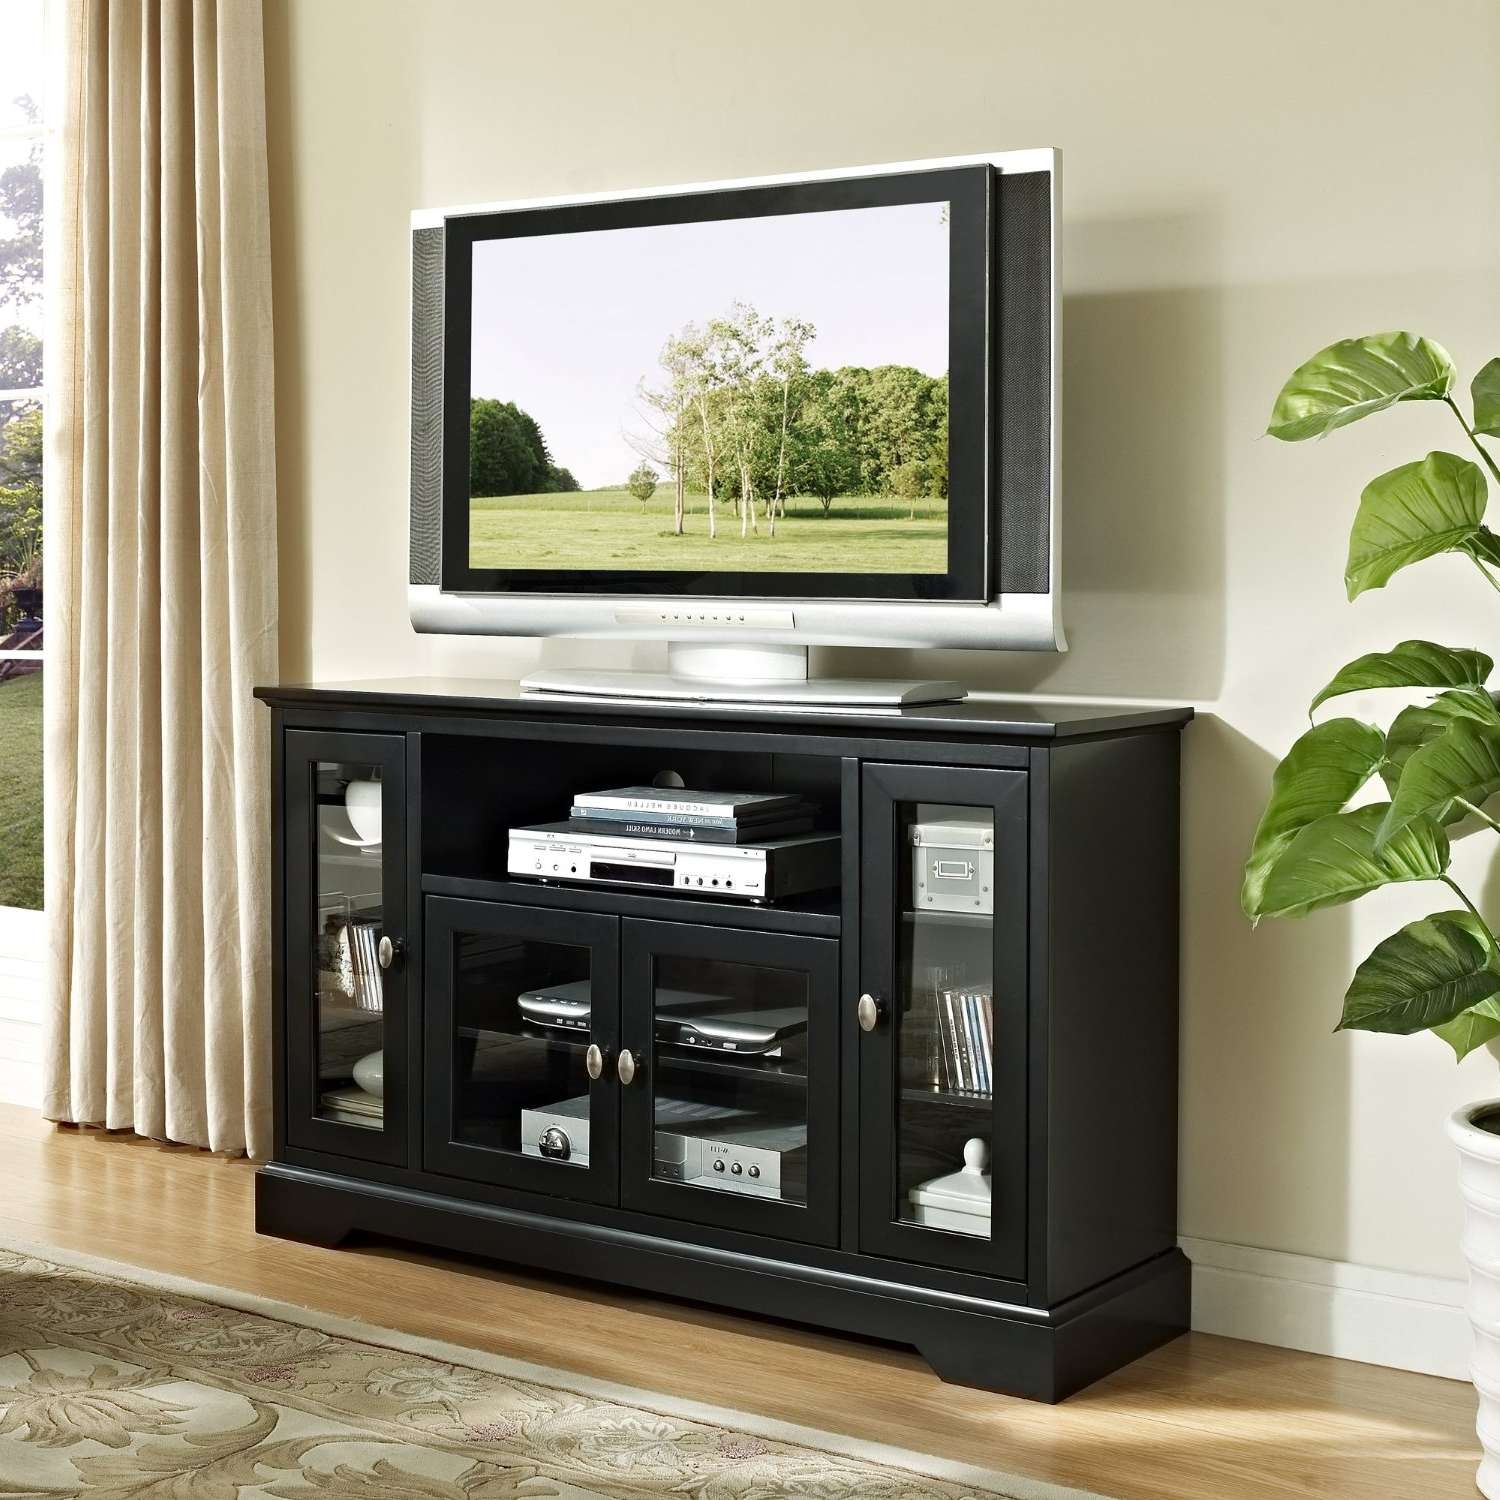 Light Wood Tv Stand Simple Room With Ikea Besta Media Cabinet Of Pertaining To Wooden Tv Cabinets With Glass Doors (View 6 of 20)